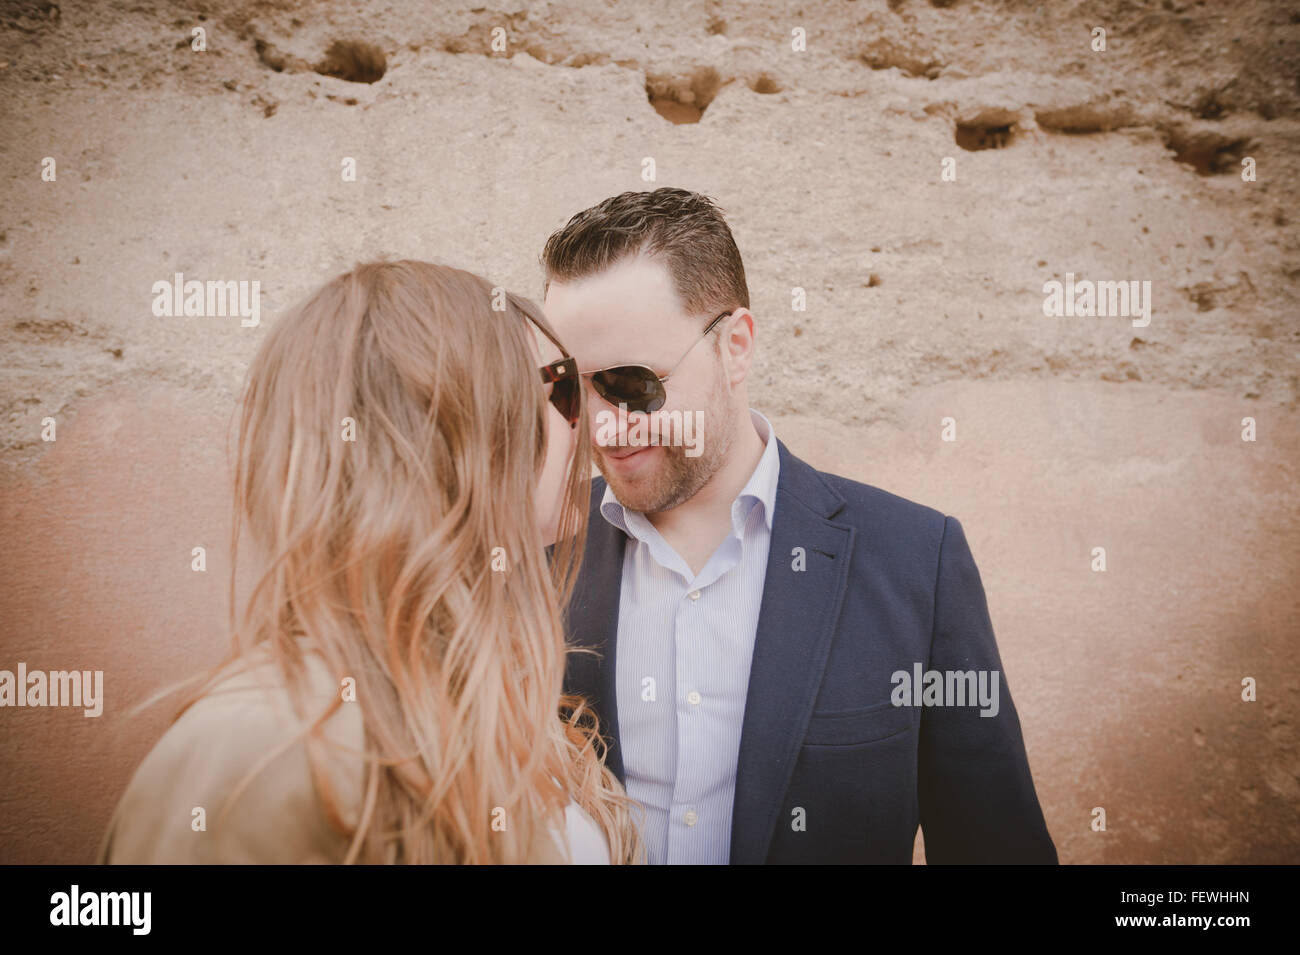 Couple Looking At Each Other - Stock Image